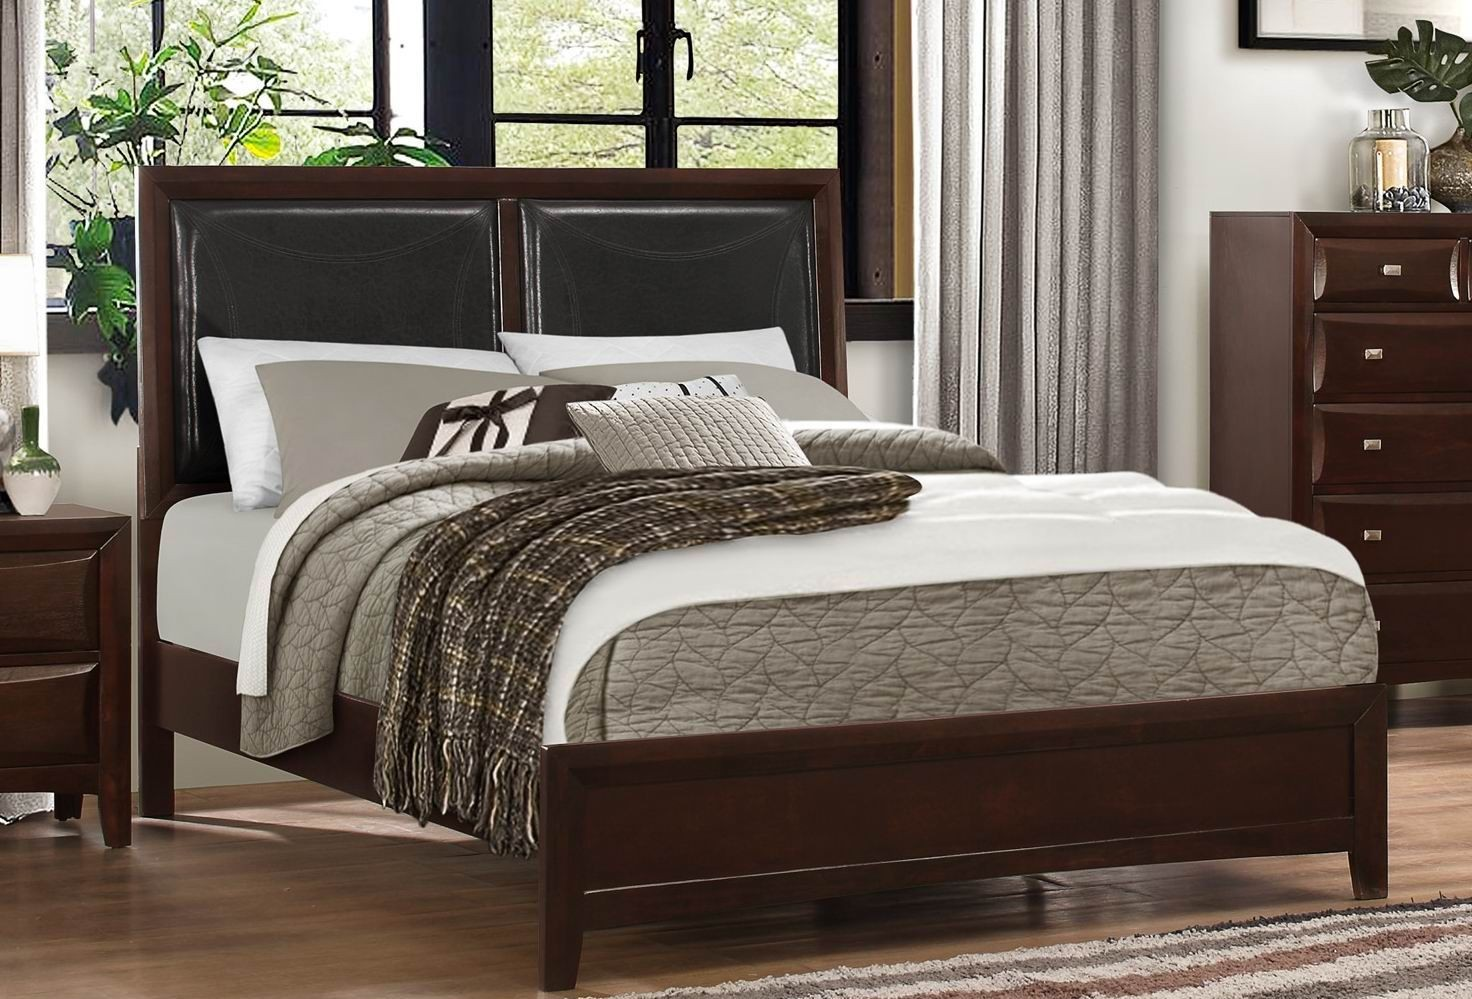 Summerlin Brown King Upholstered Panel Bed From